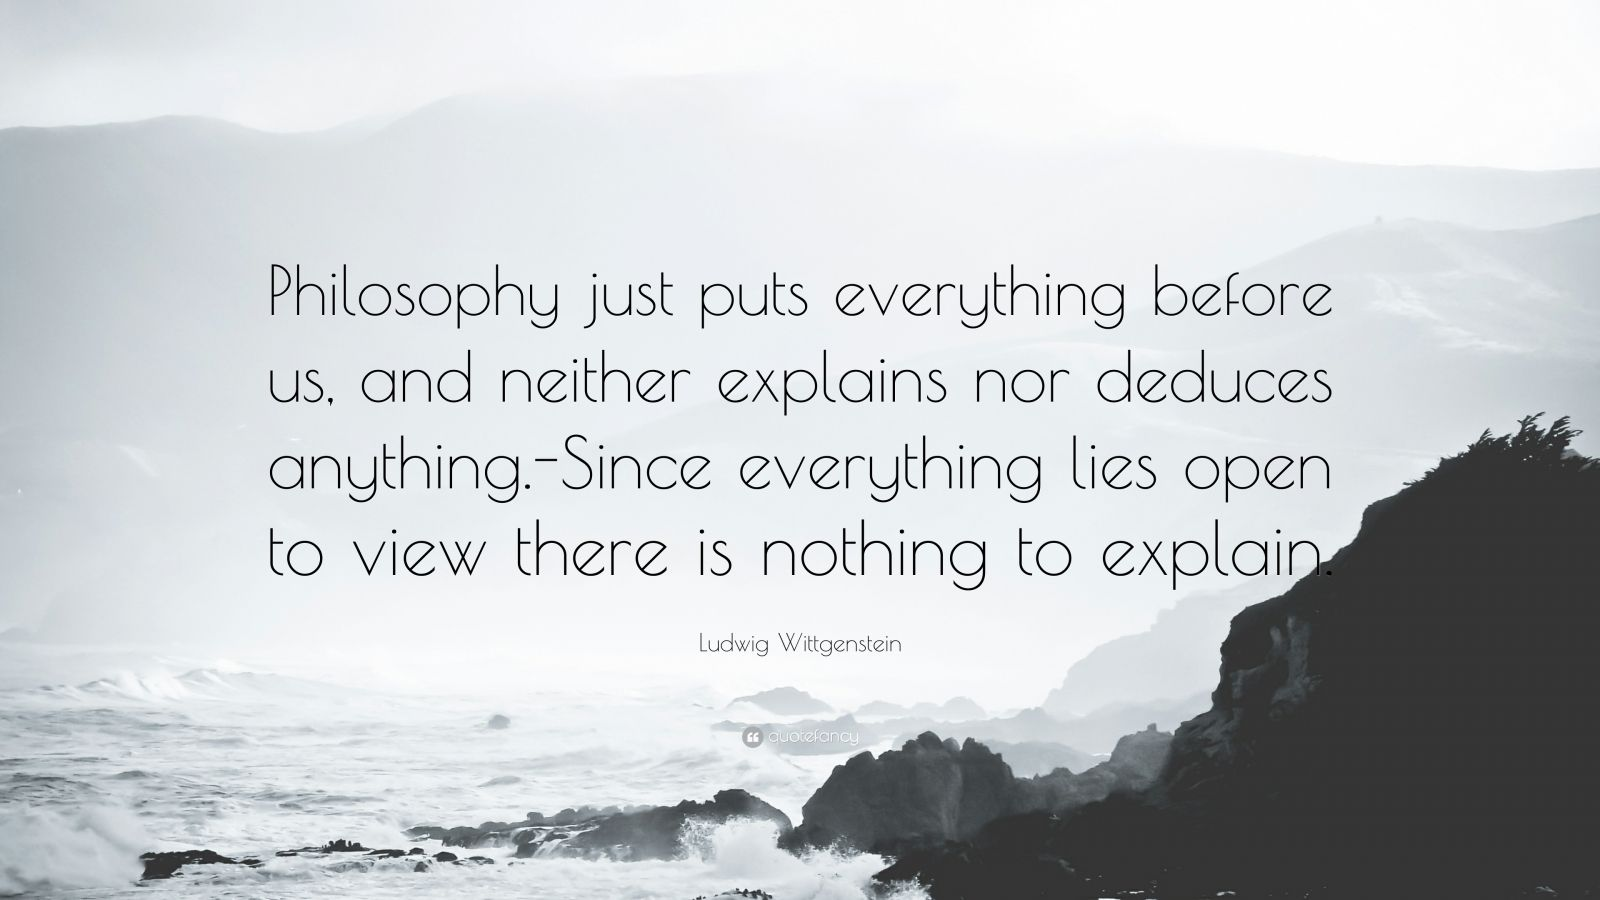 """Ludwig Wittgenstein Quote: """"Philosophy just puts everything before us, and neither explains nor deduces anything.-Since everything lies open to view there is nothing to explain."""""""